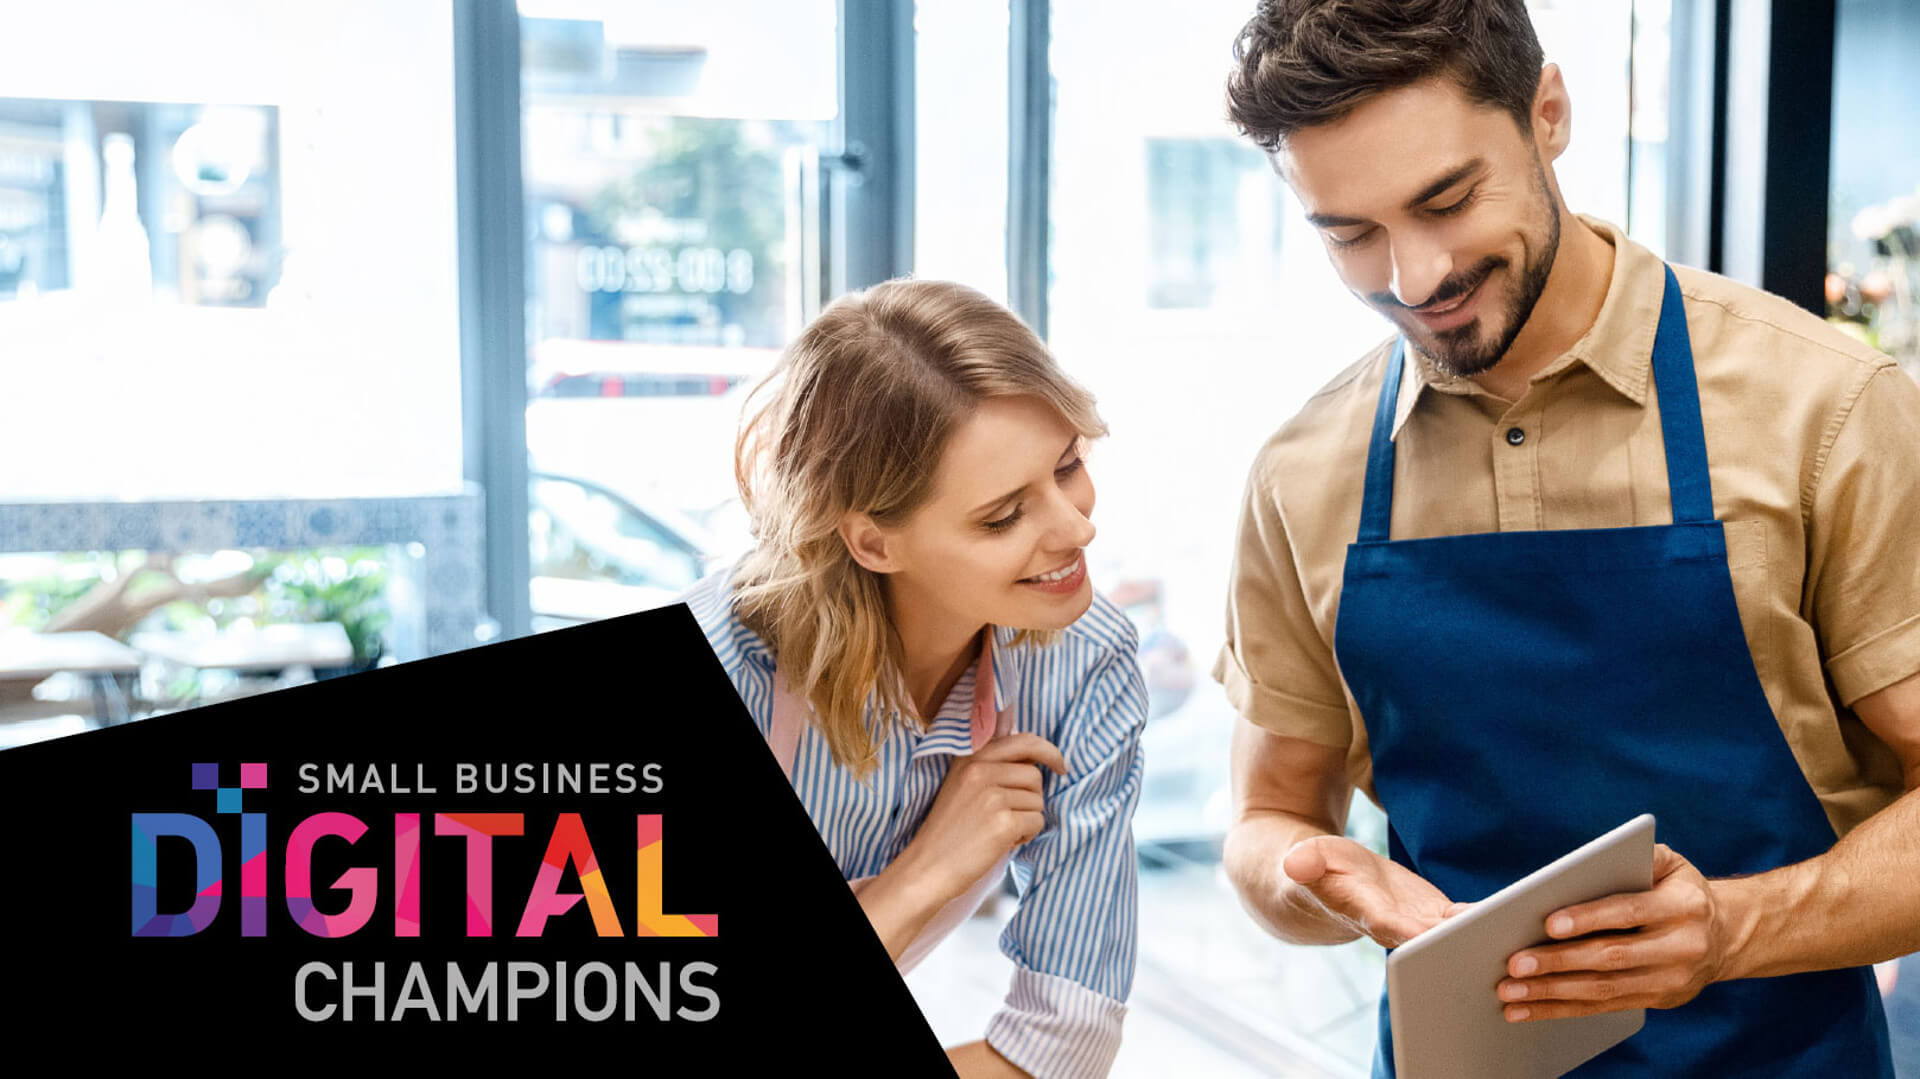 safety-champion-sbdc-small-business-digital-champions-tablet-consulting